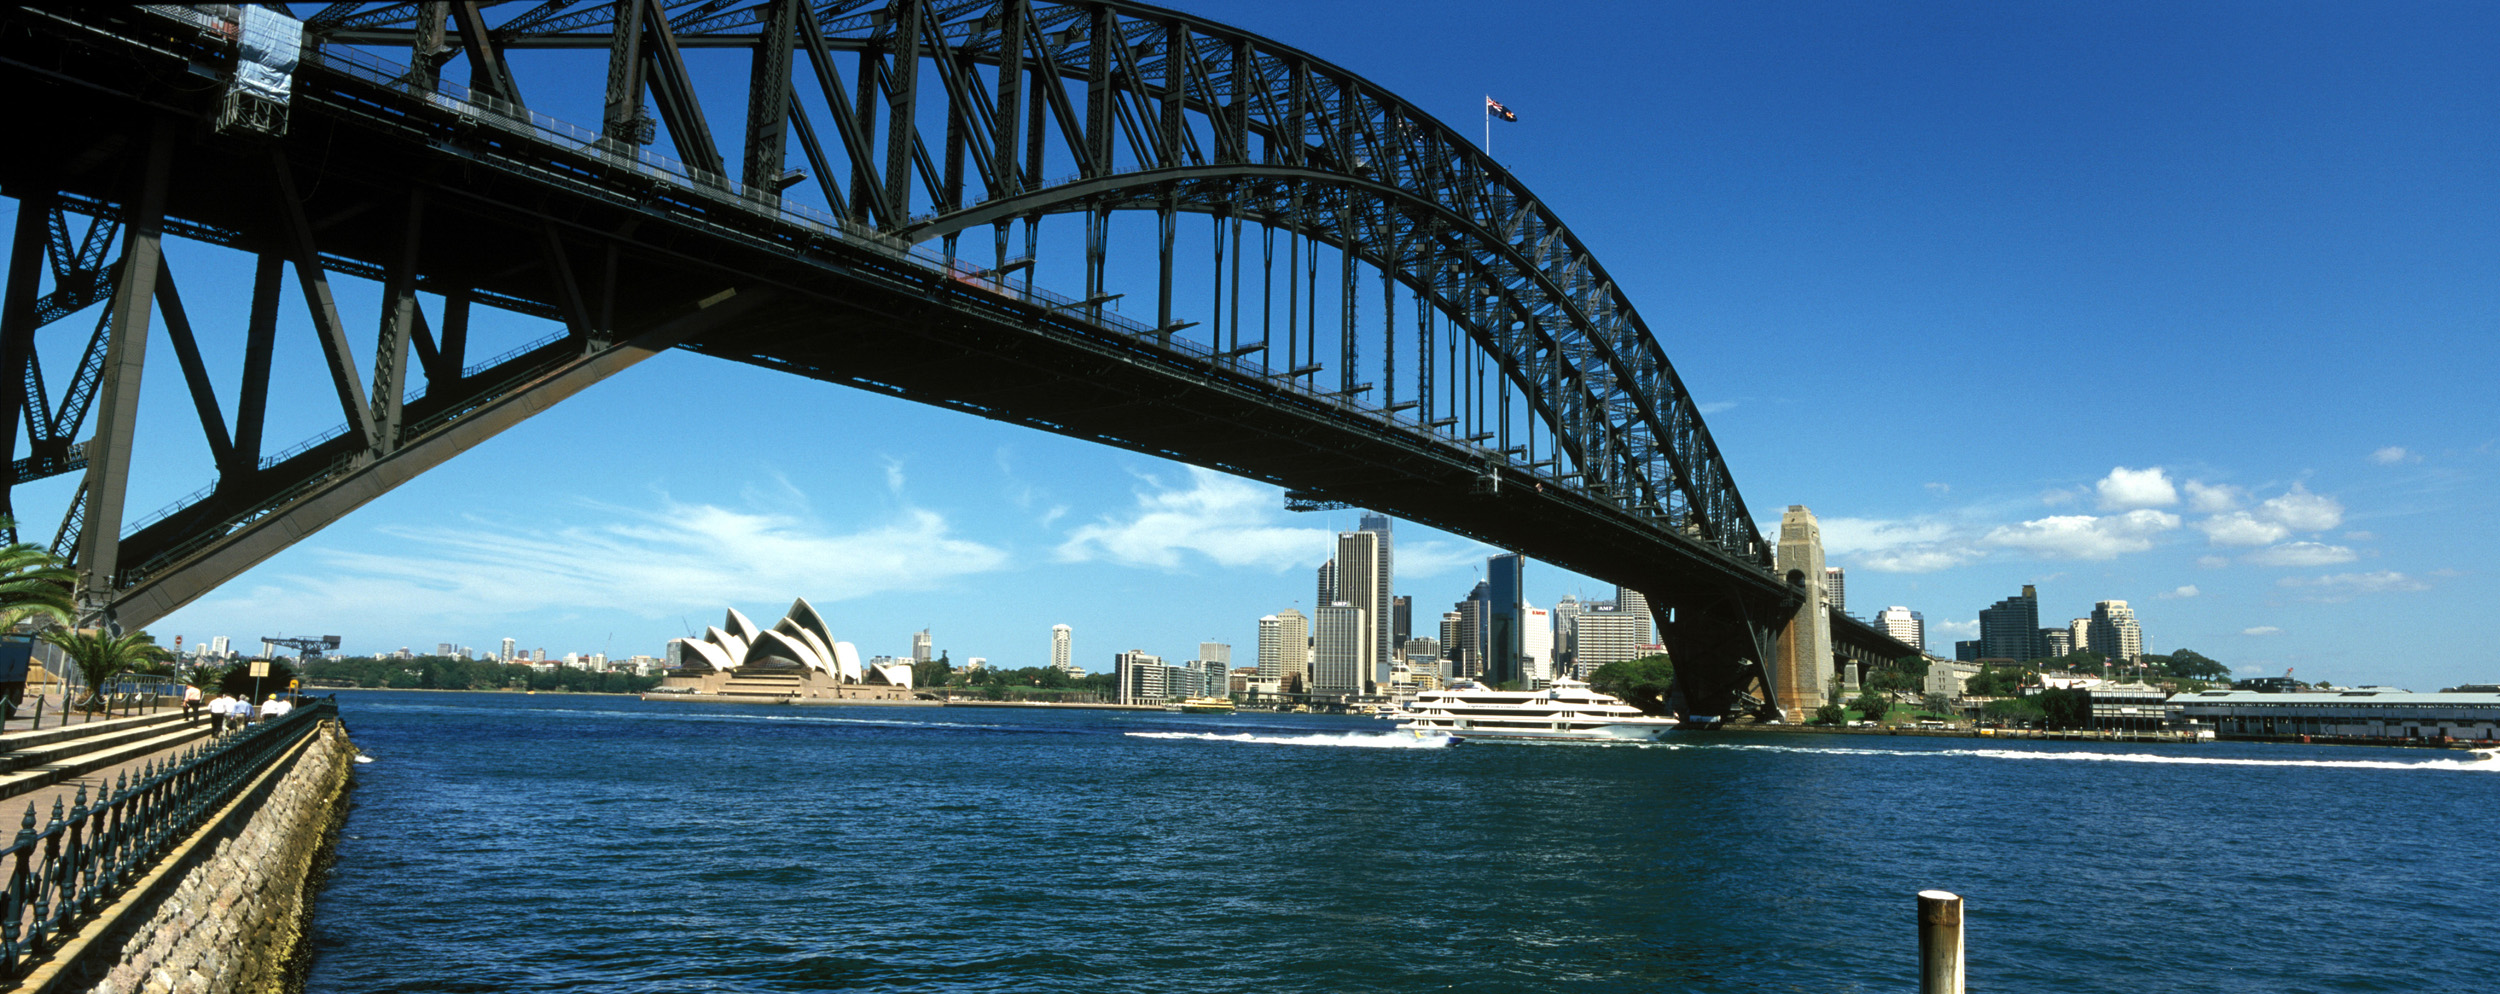 Sydney Australie Harbour Bridge